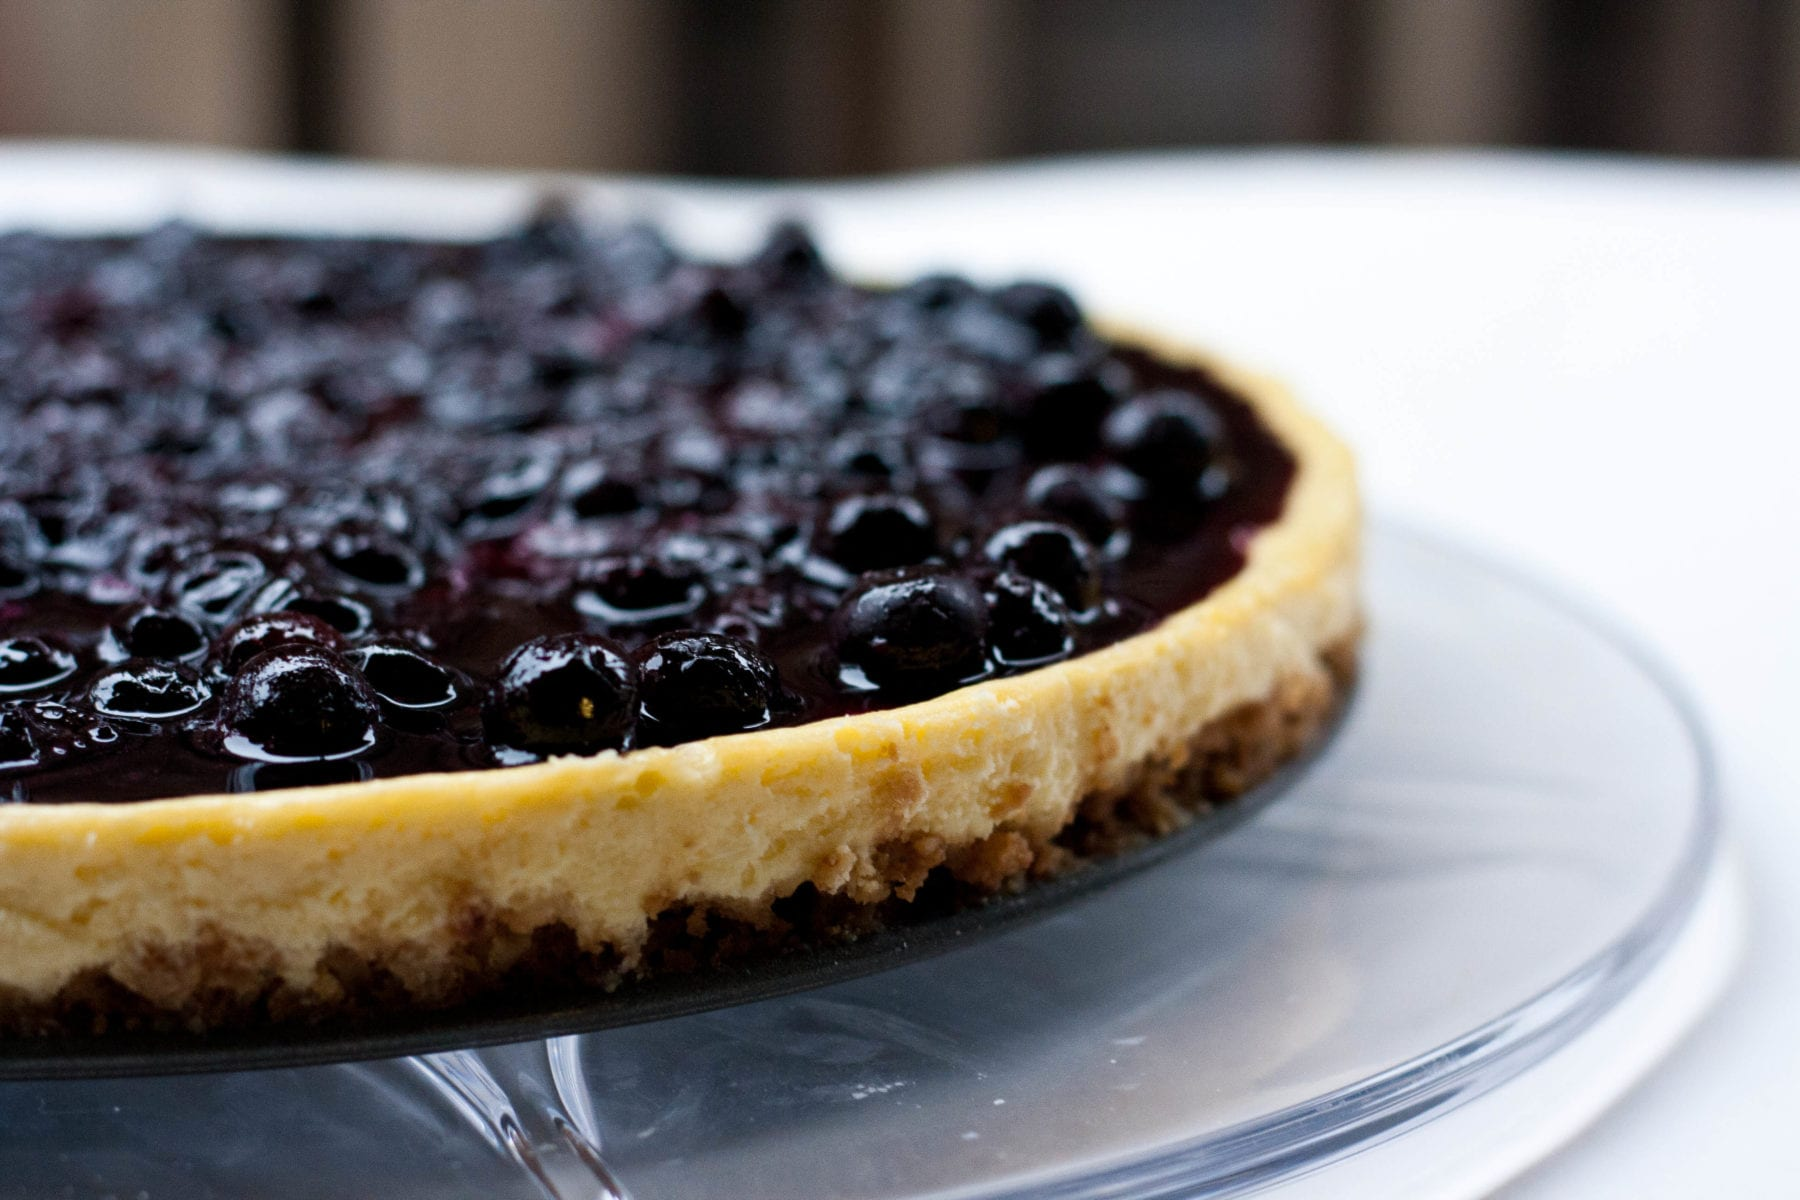 Crème Fraiche Cheesecake with Blueberry Topping